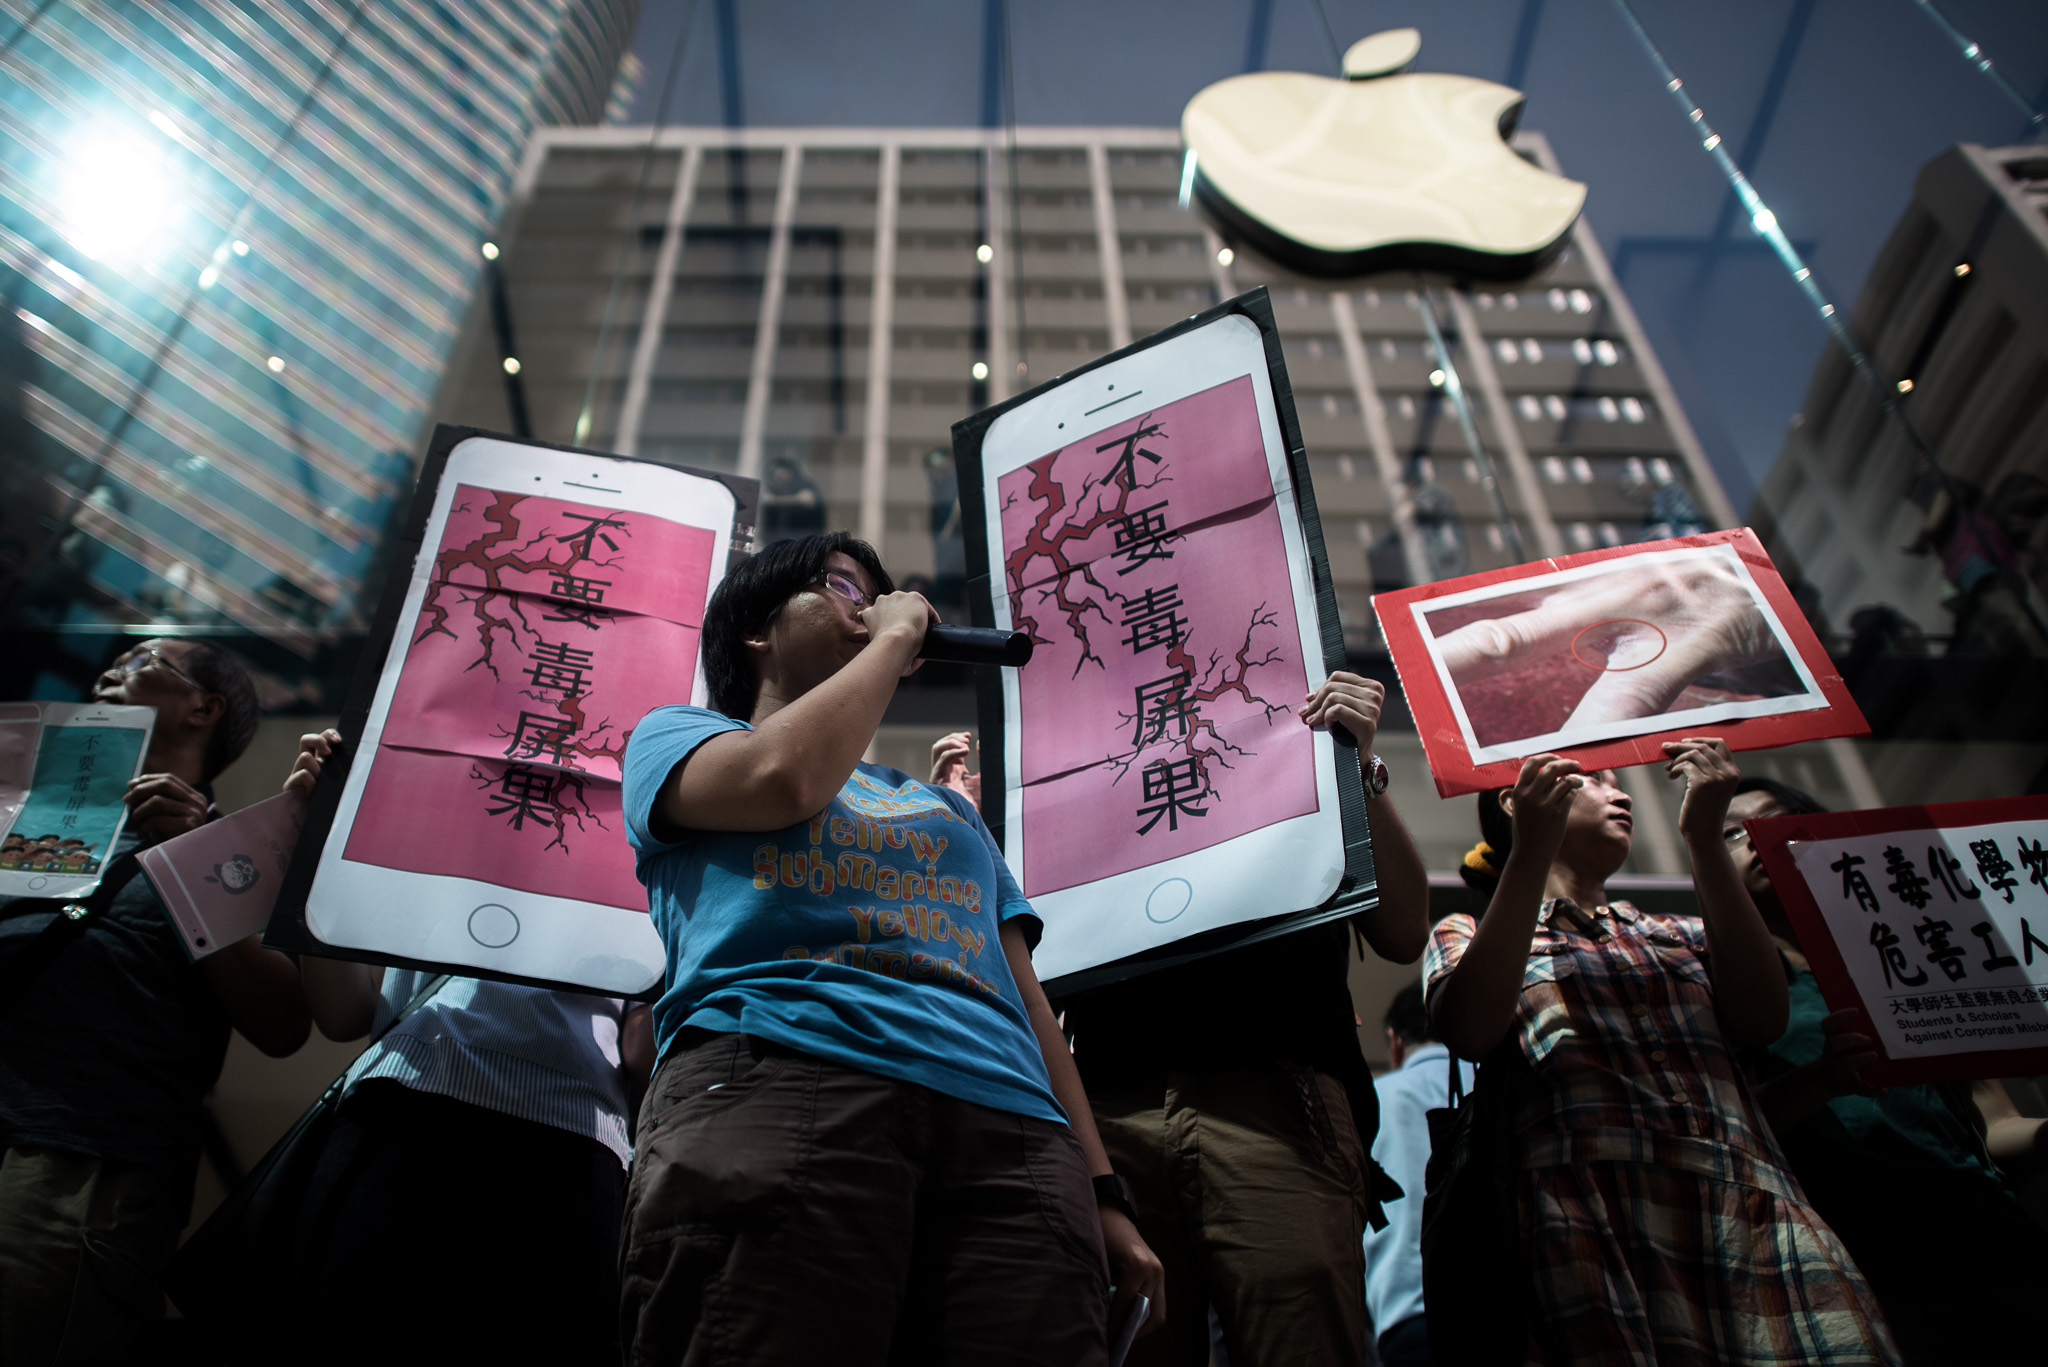 Rights campaigners stage a protest coinciding with the launch of the new iPhone 6s outside an Apple store in Hong Kong